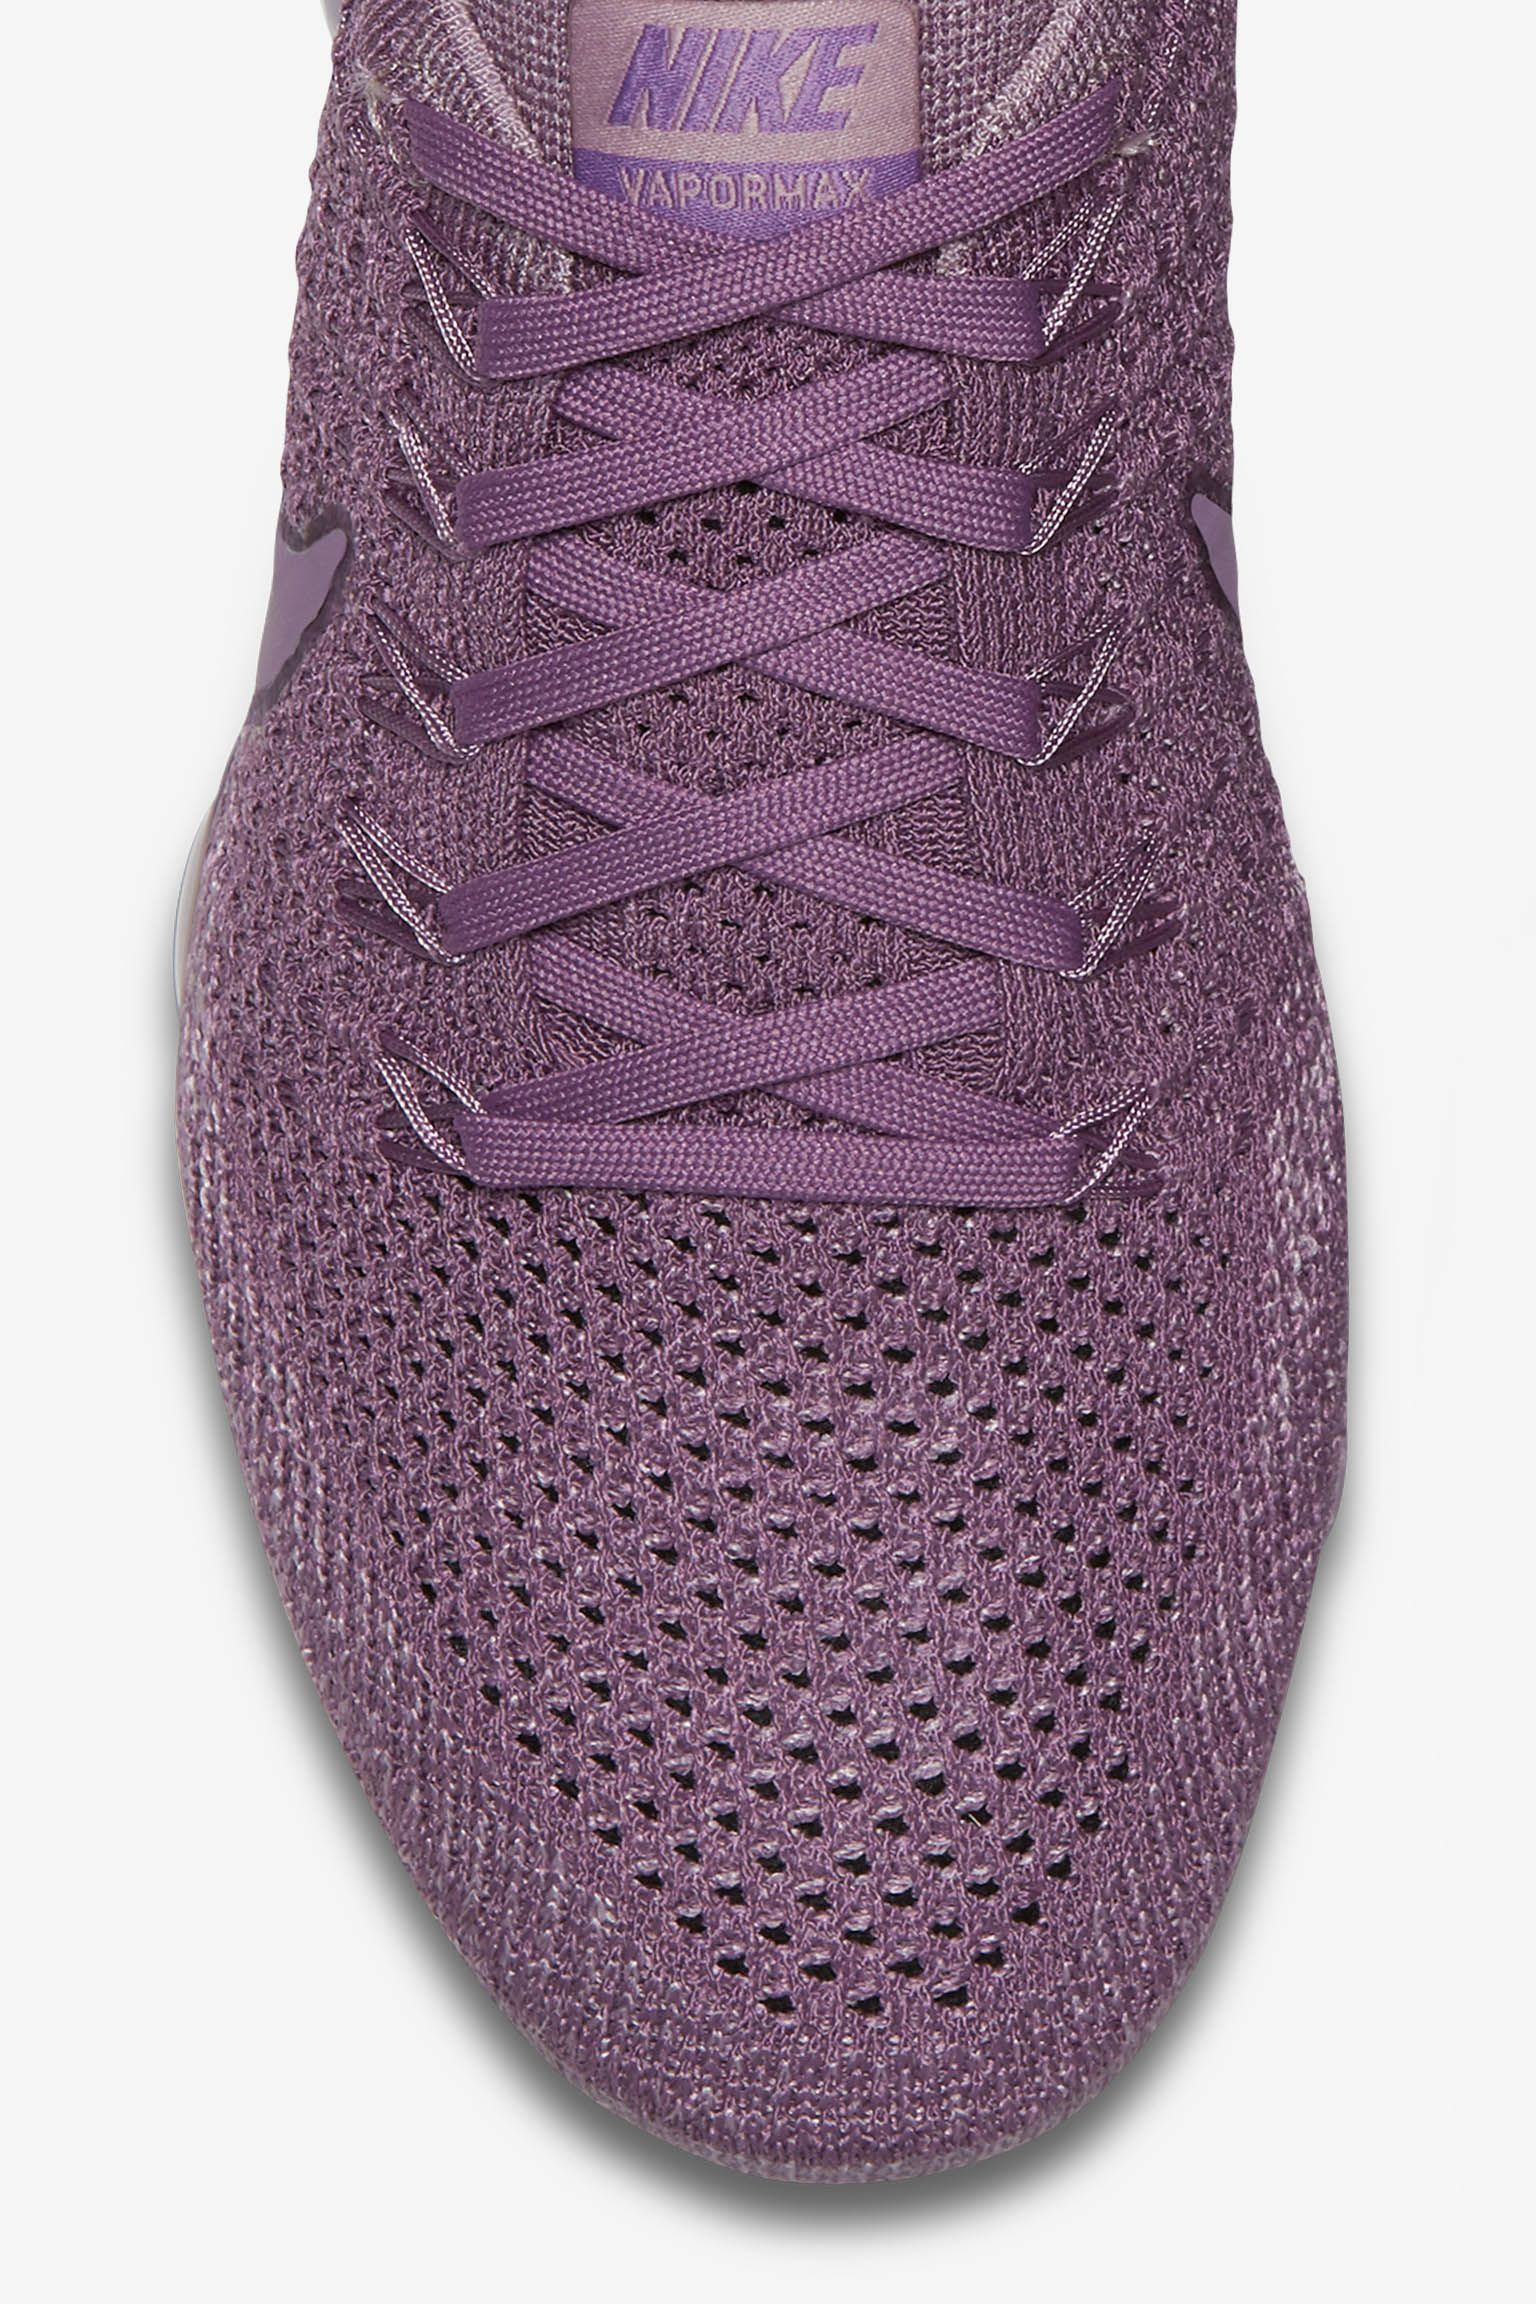 Women's Nike Air VaporMax Flyknit Day to Night 'Violet Dust'